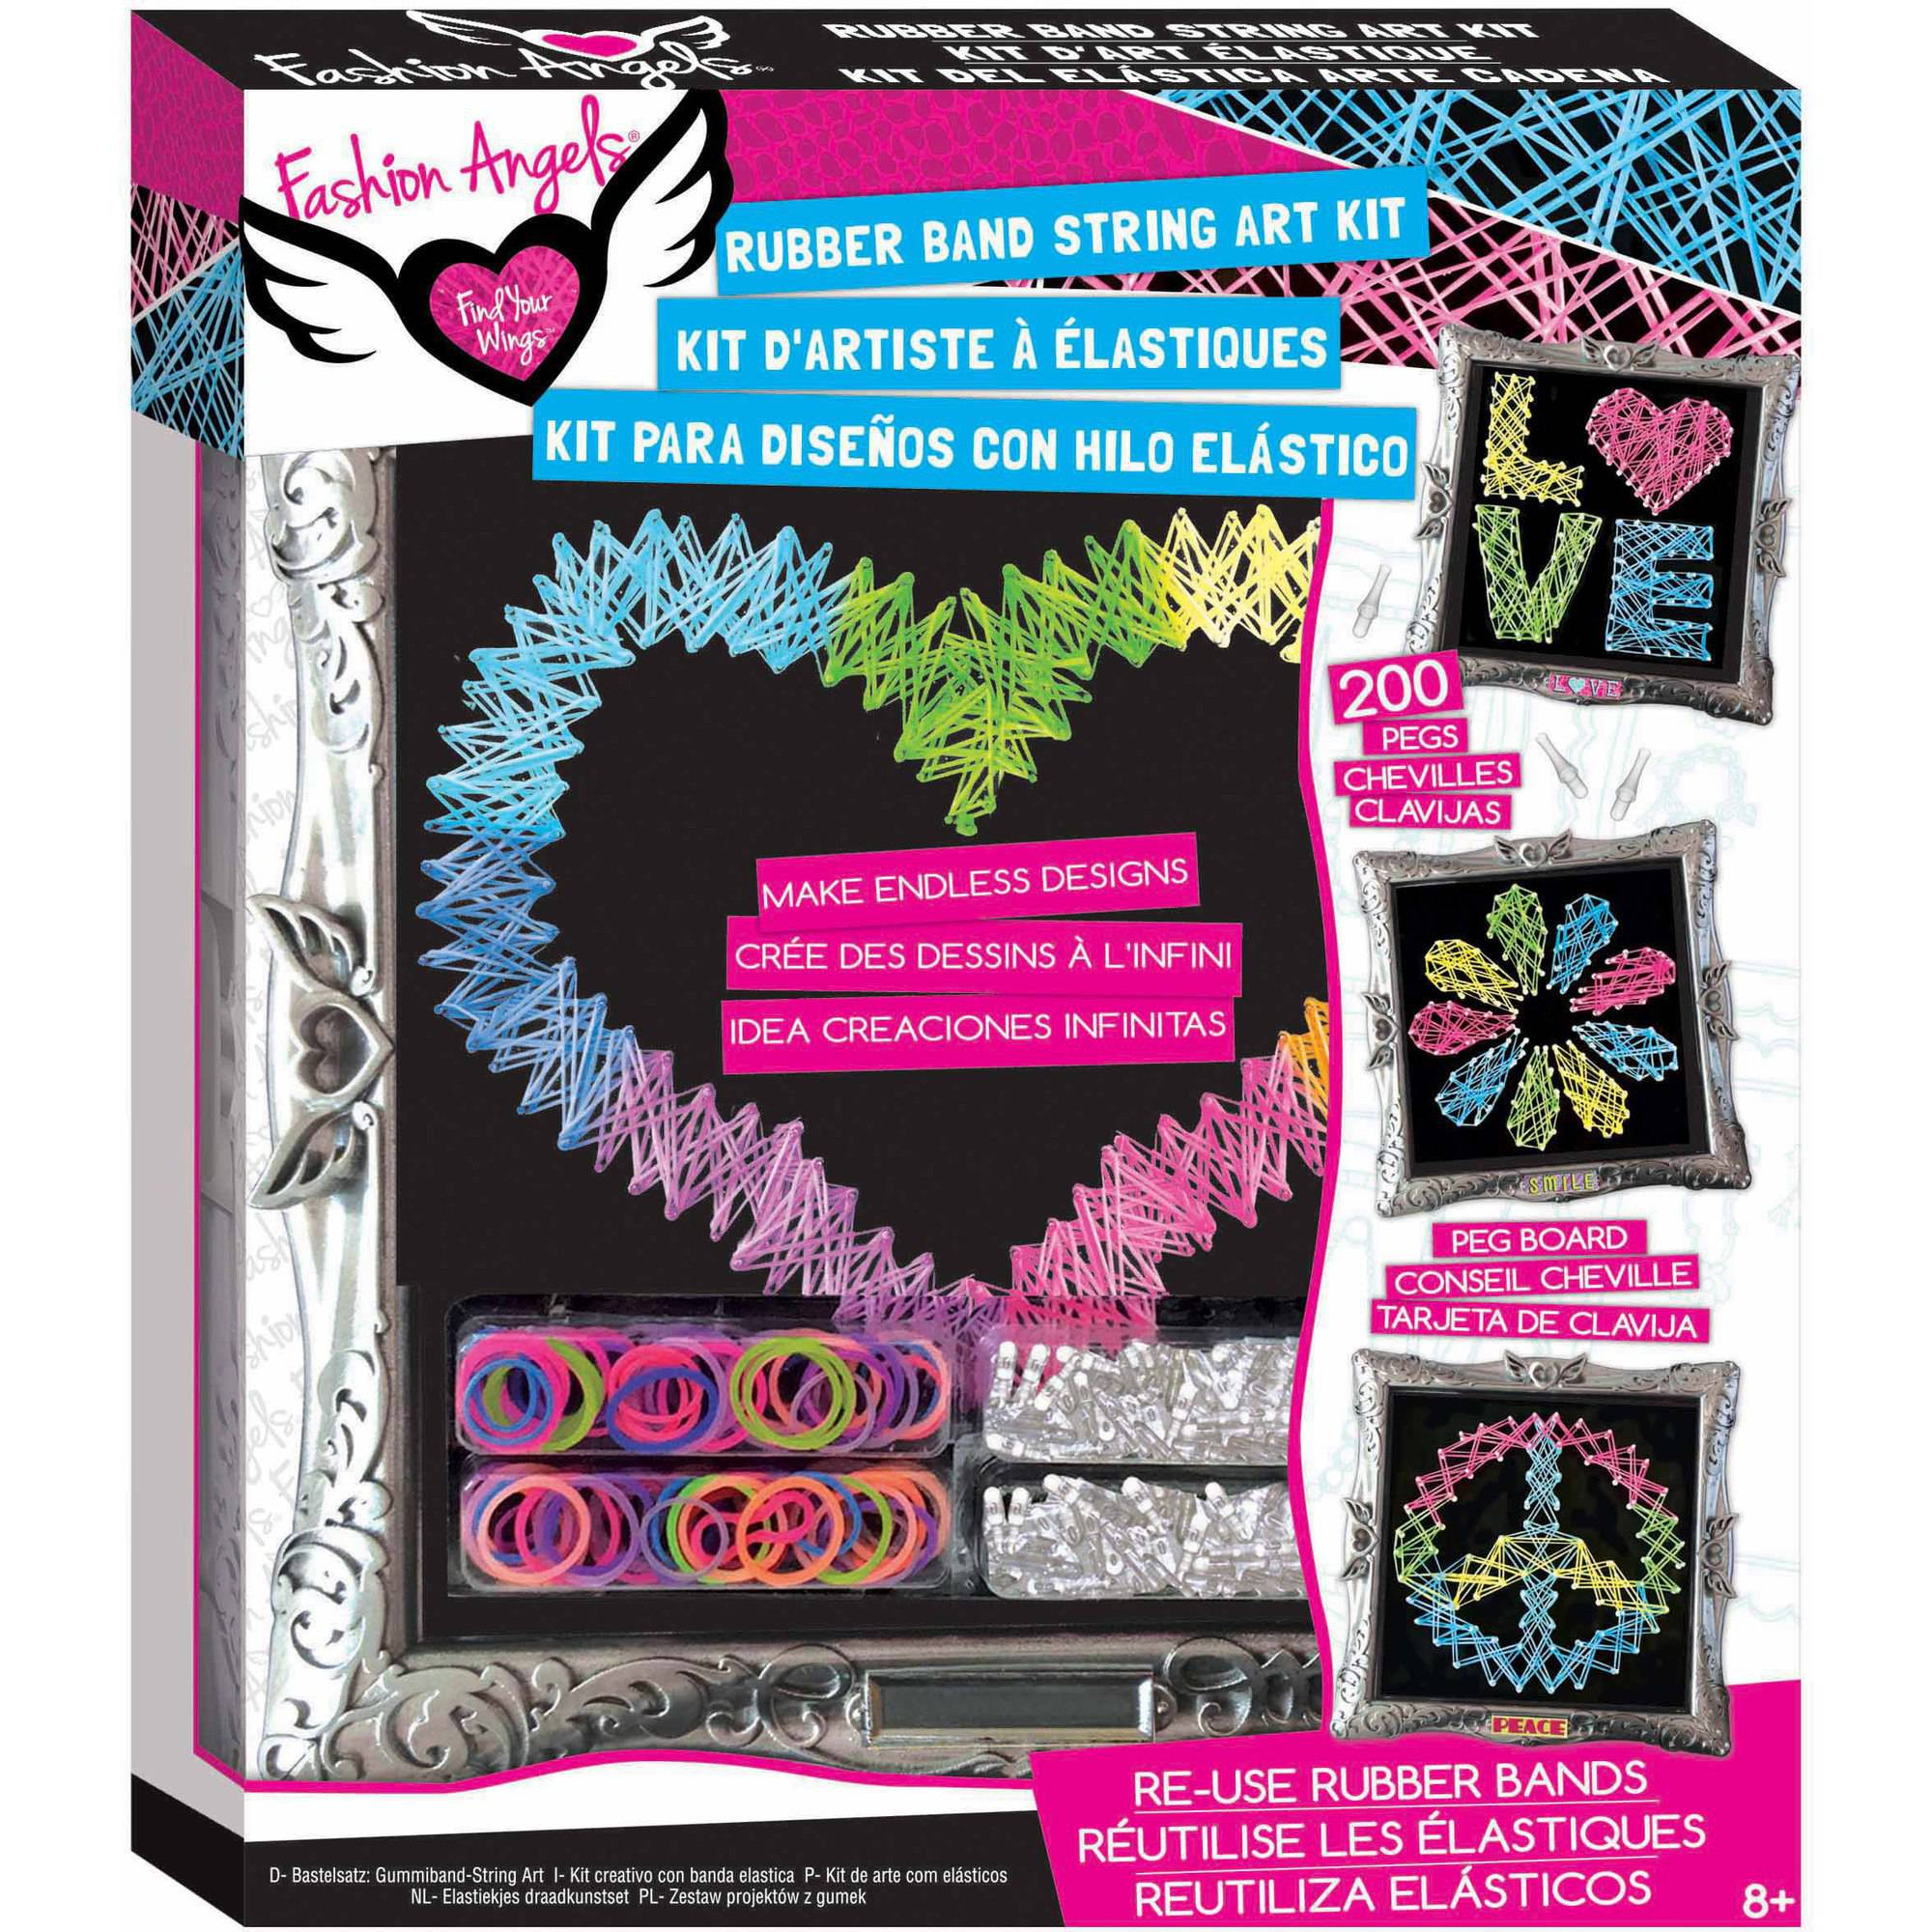 Fashion Angels Rubber Band String Art Kit